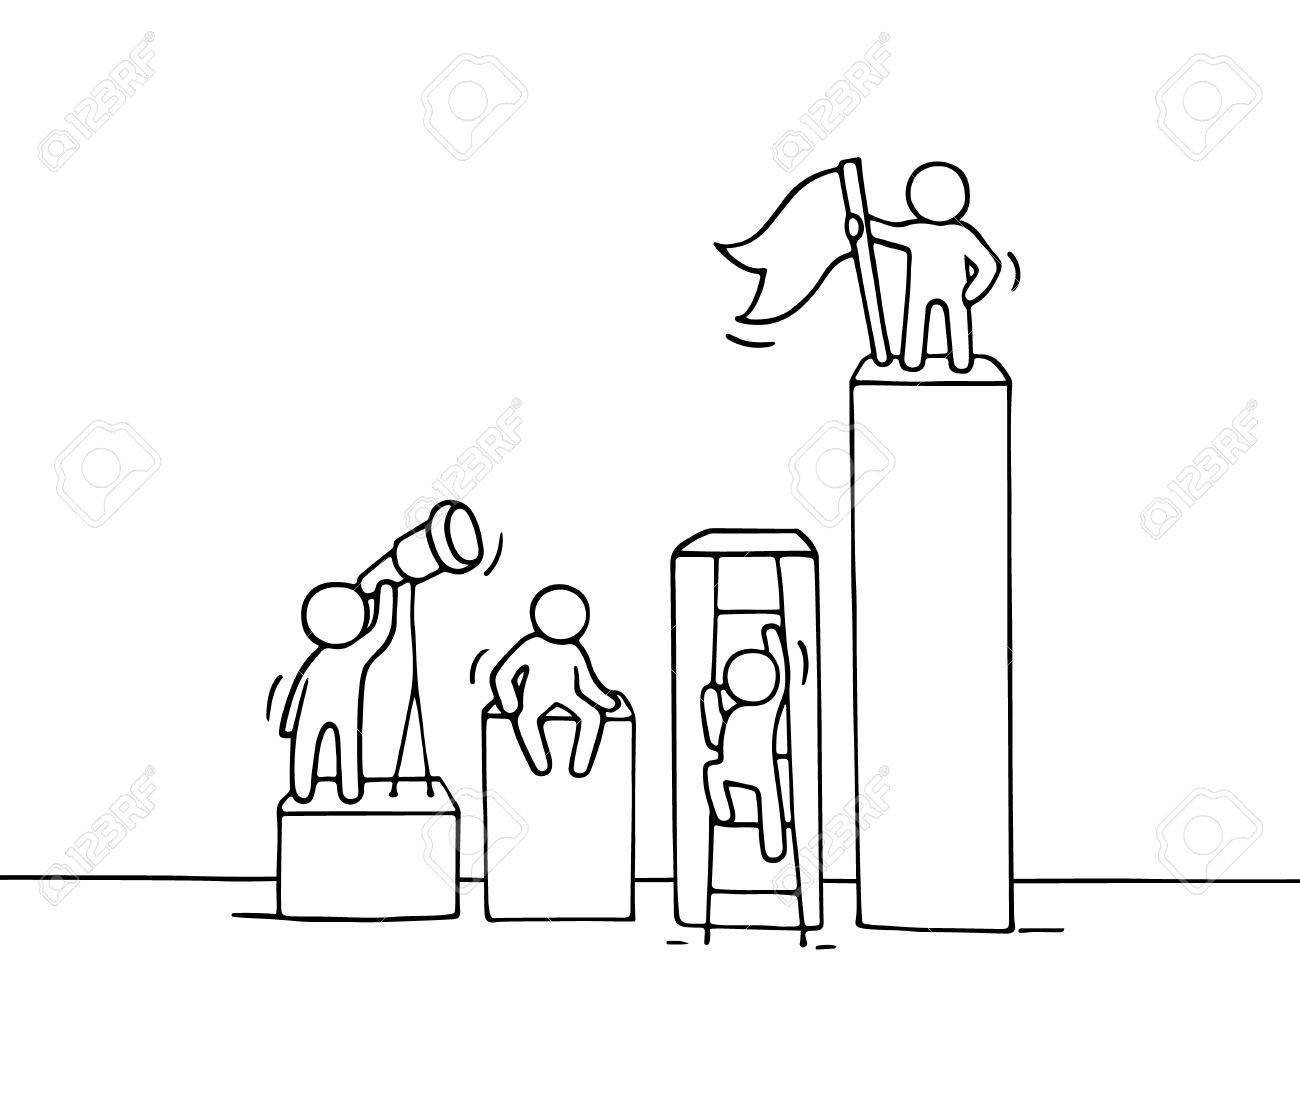 1300x1114 Sketch Of Diagramm With Working Little People. Doodle Cute